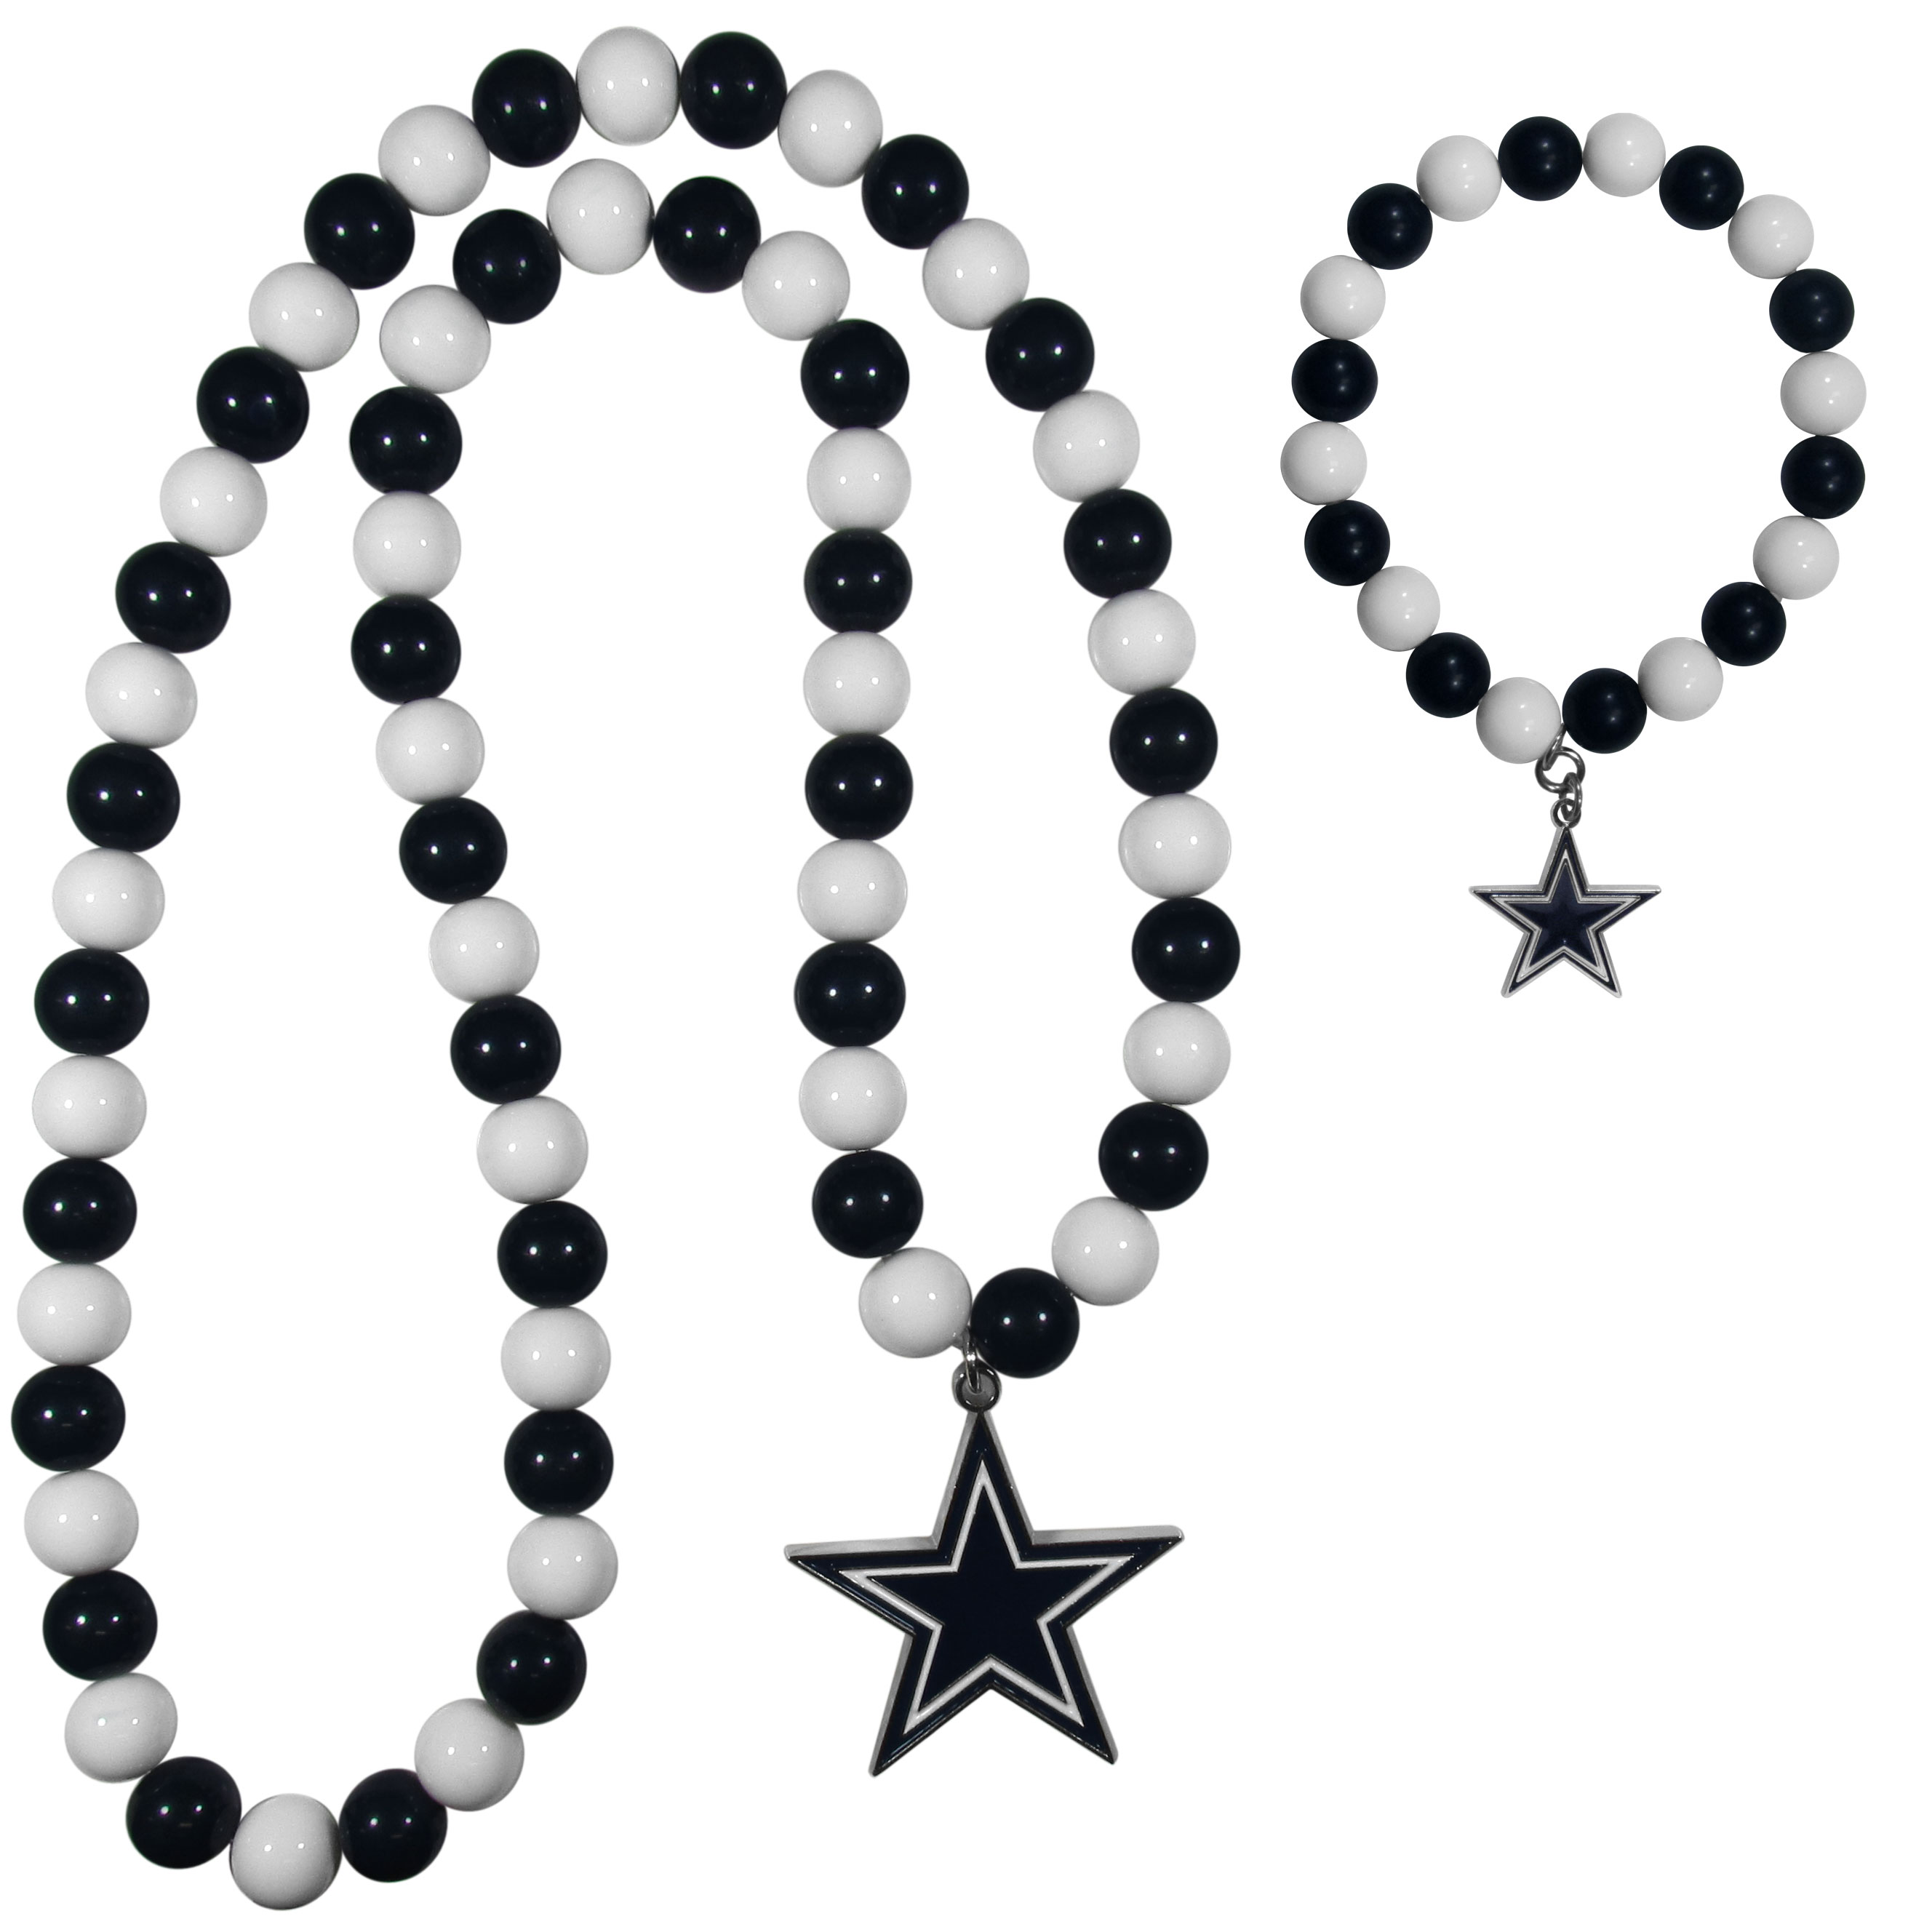 Dallas Cowboys Fan Bead Necklace and Bracelet Set - These fun and colorful Dallas Cowboys fan bead jewelry pieces are an eyecatching way to show off your team spirit. The striking necklace is a 24 inch string of alternating team colored beads with a large team pendant. The mathcing bracelet has alternating team colored beads on a stretch cord and features a matching team charm.